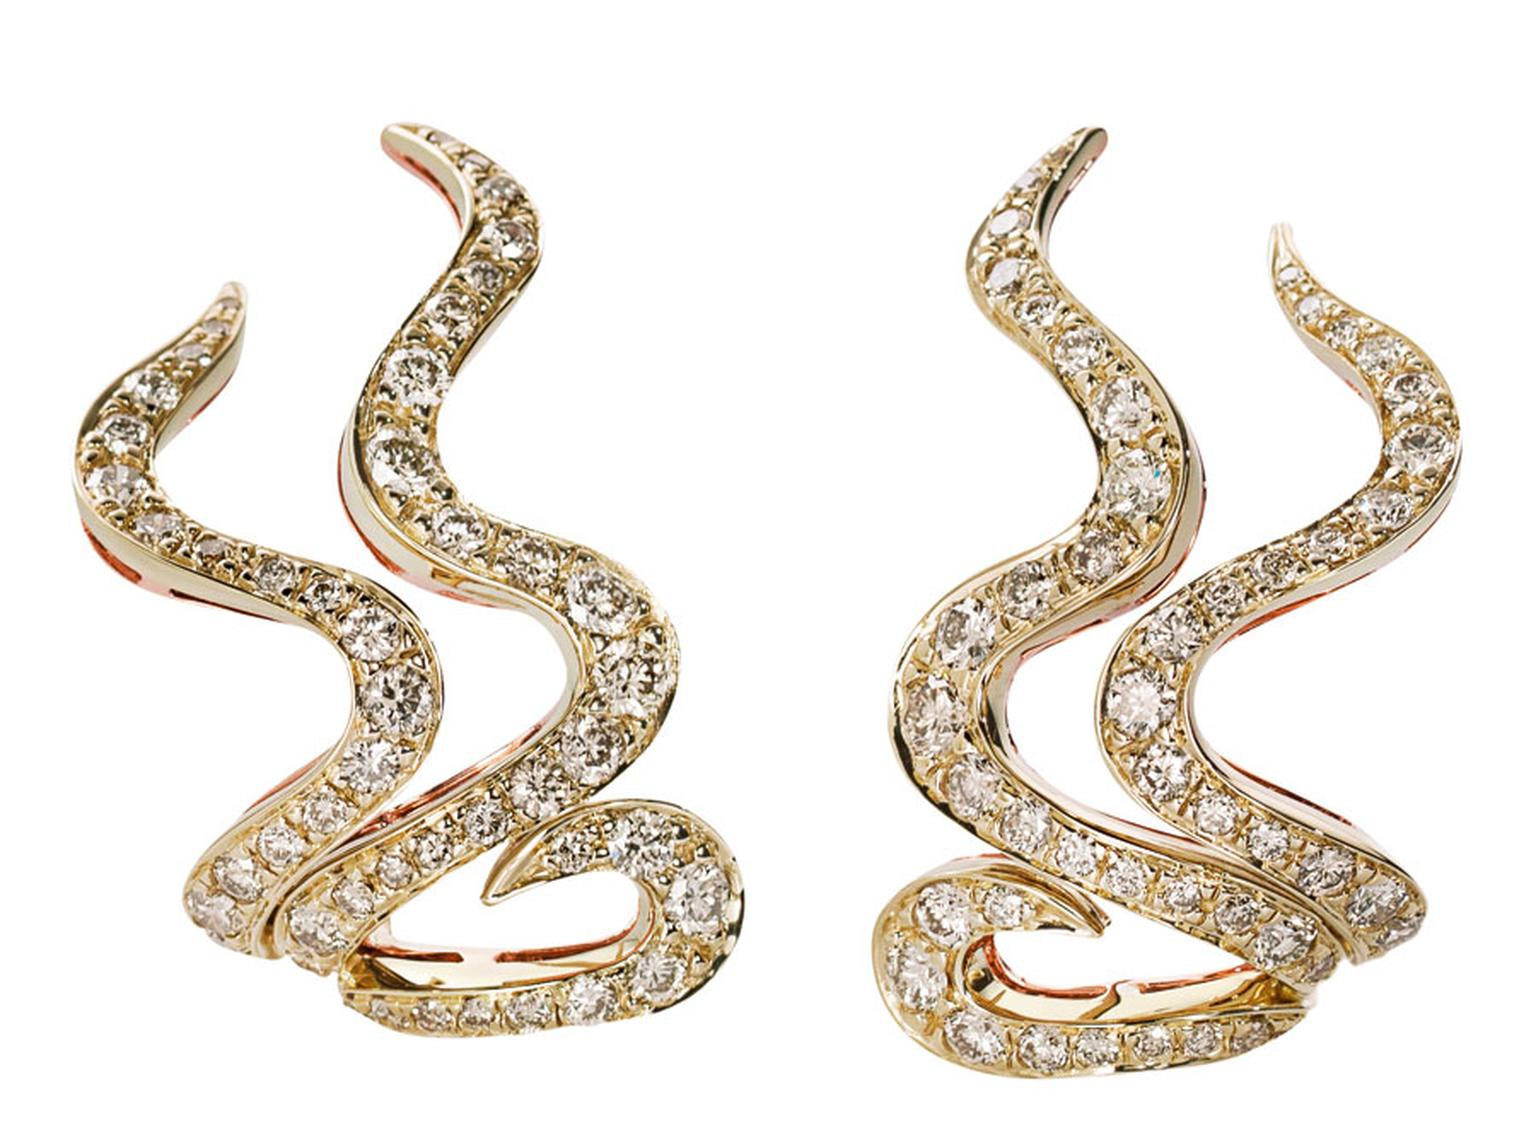 H-Stern-Earrings-in-yellow-and-rose-gold-with-diamonds.jpg